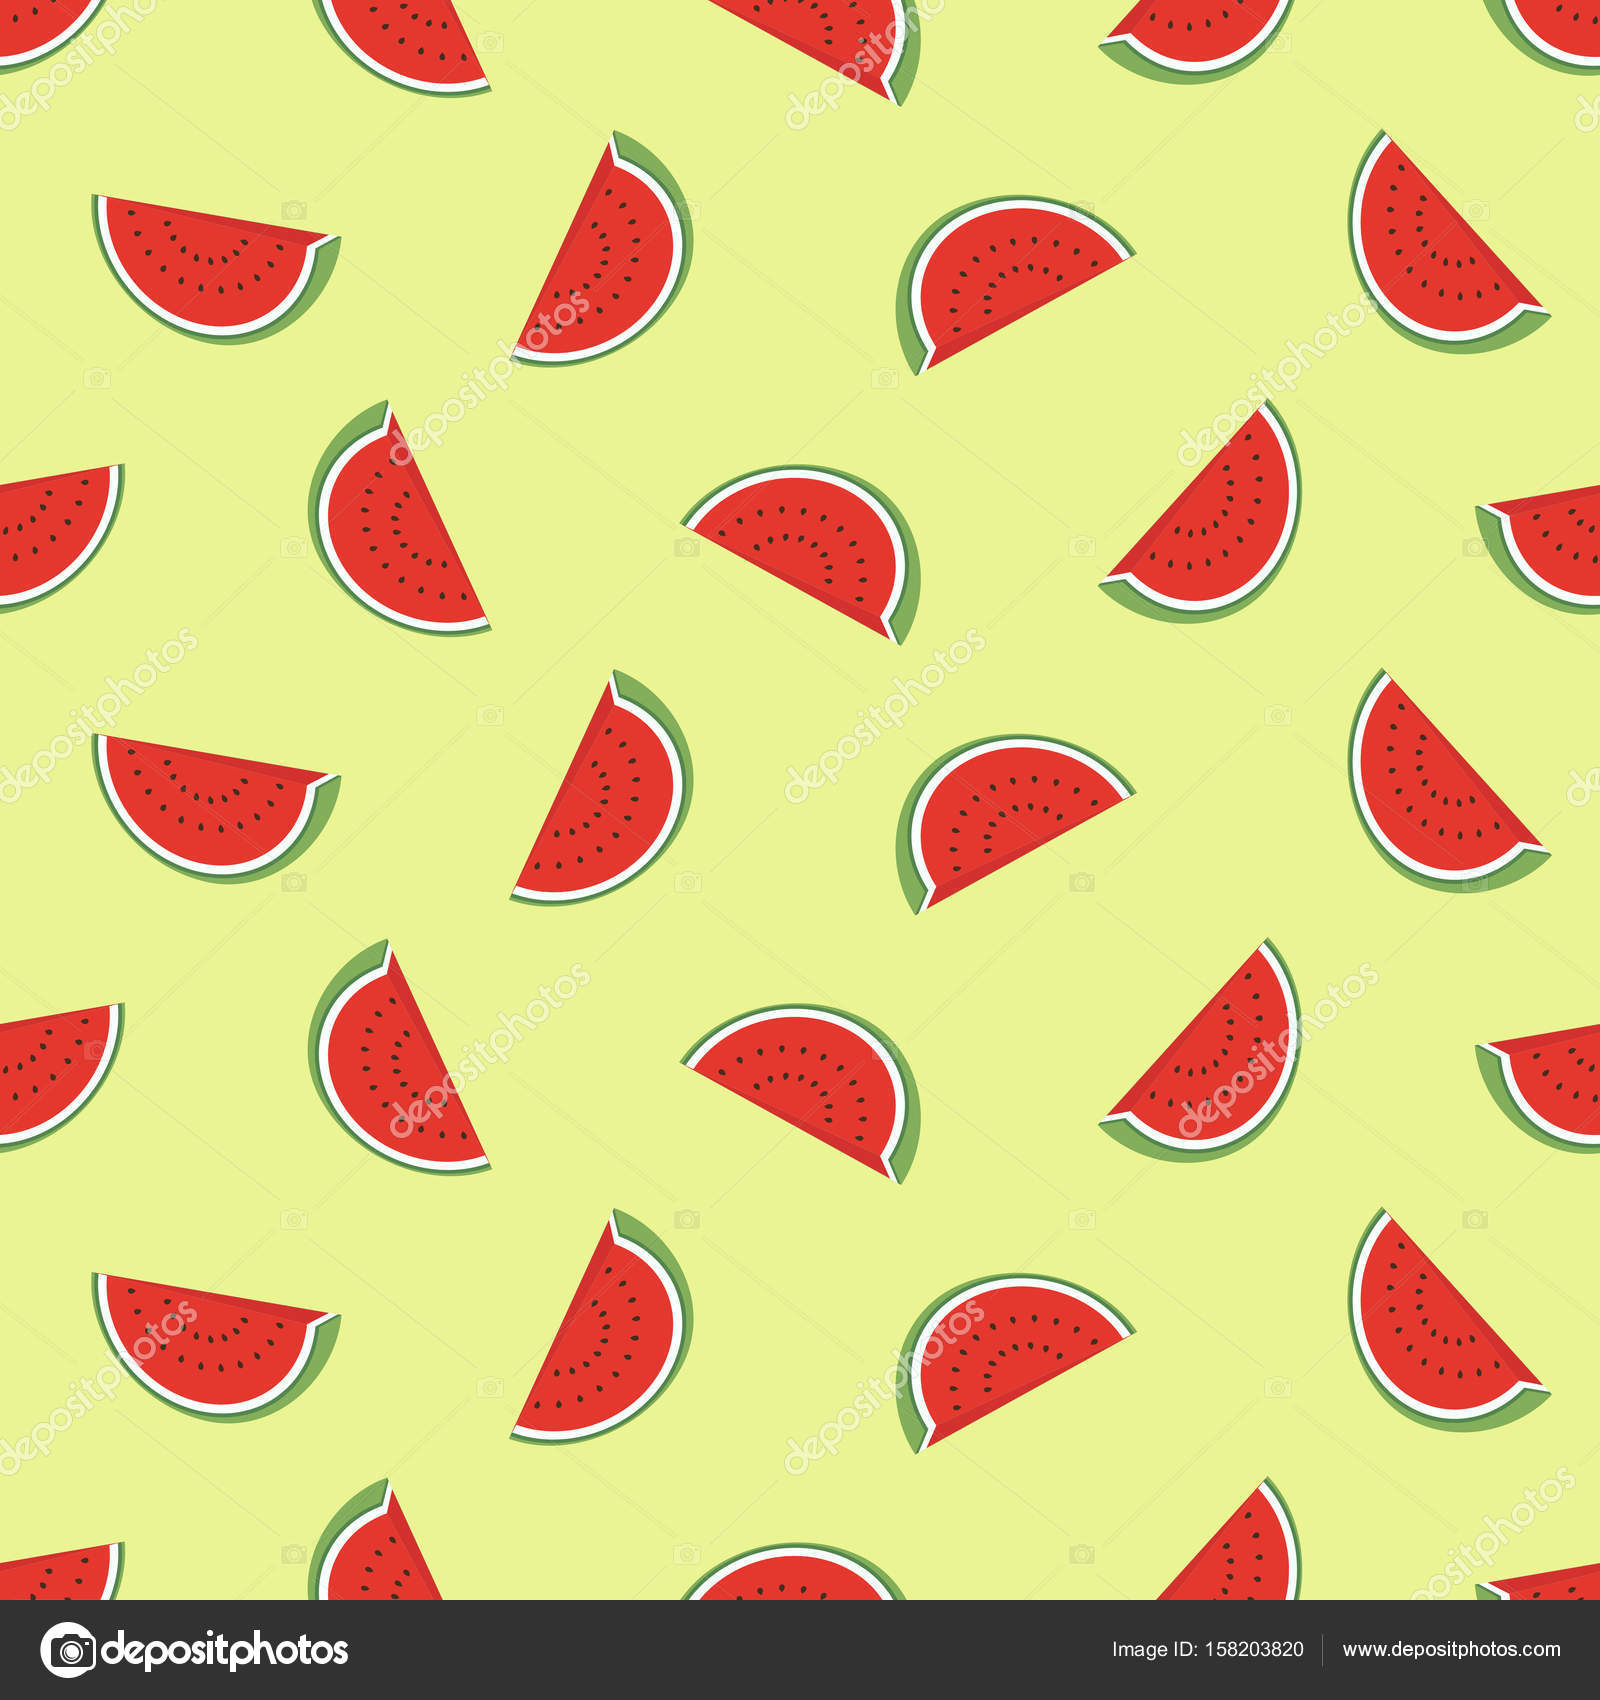 Top Wallpaper High Quality Pattern - depositphotos_158203820-stock-illustration-minimalist-watermelon-high-quality-seamless  Pictures_999178.jpg